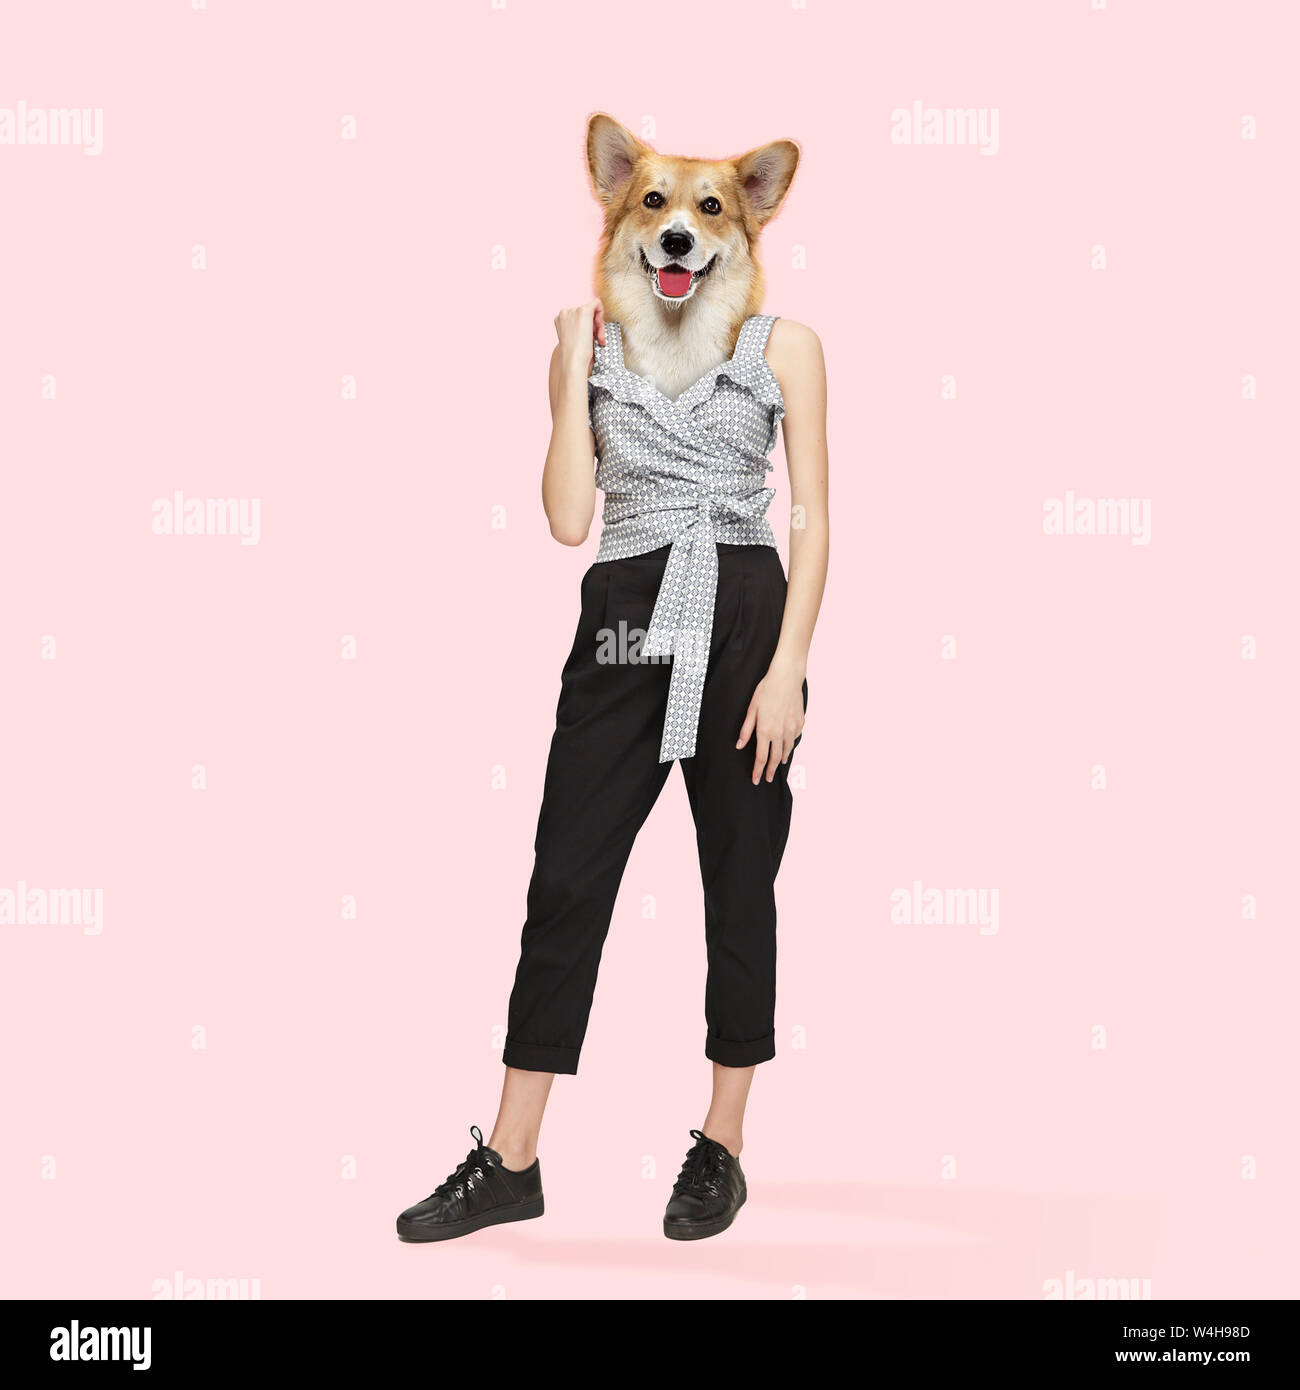 Dog With The Slim Female Body In Casual Clothes Feminine